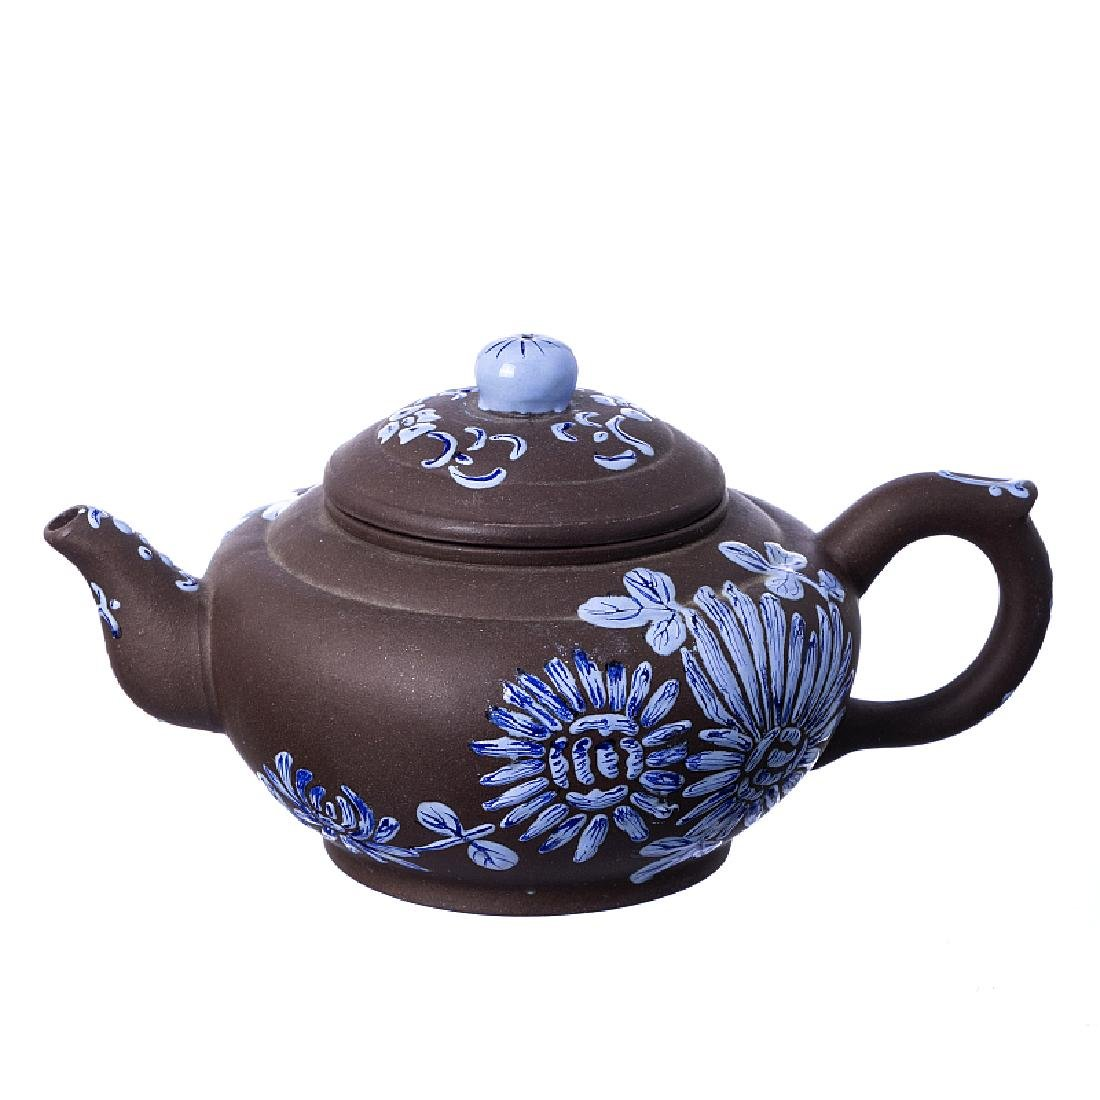 Flowers teapot in Yixing ceramic